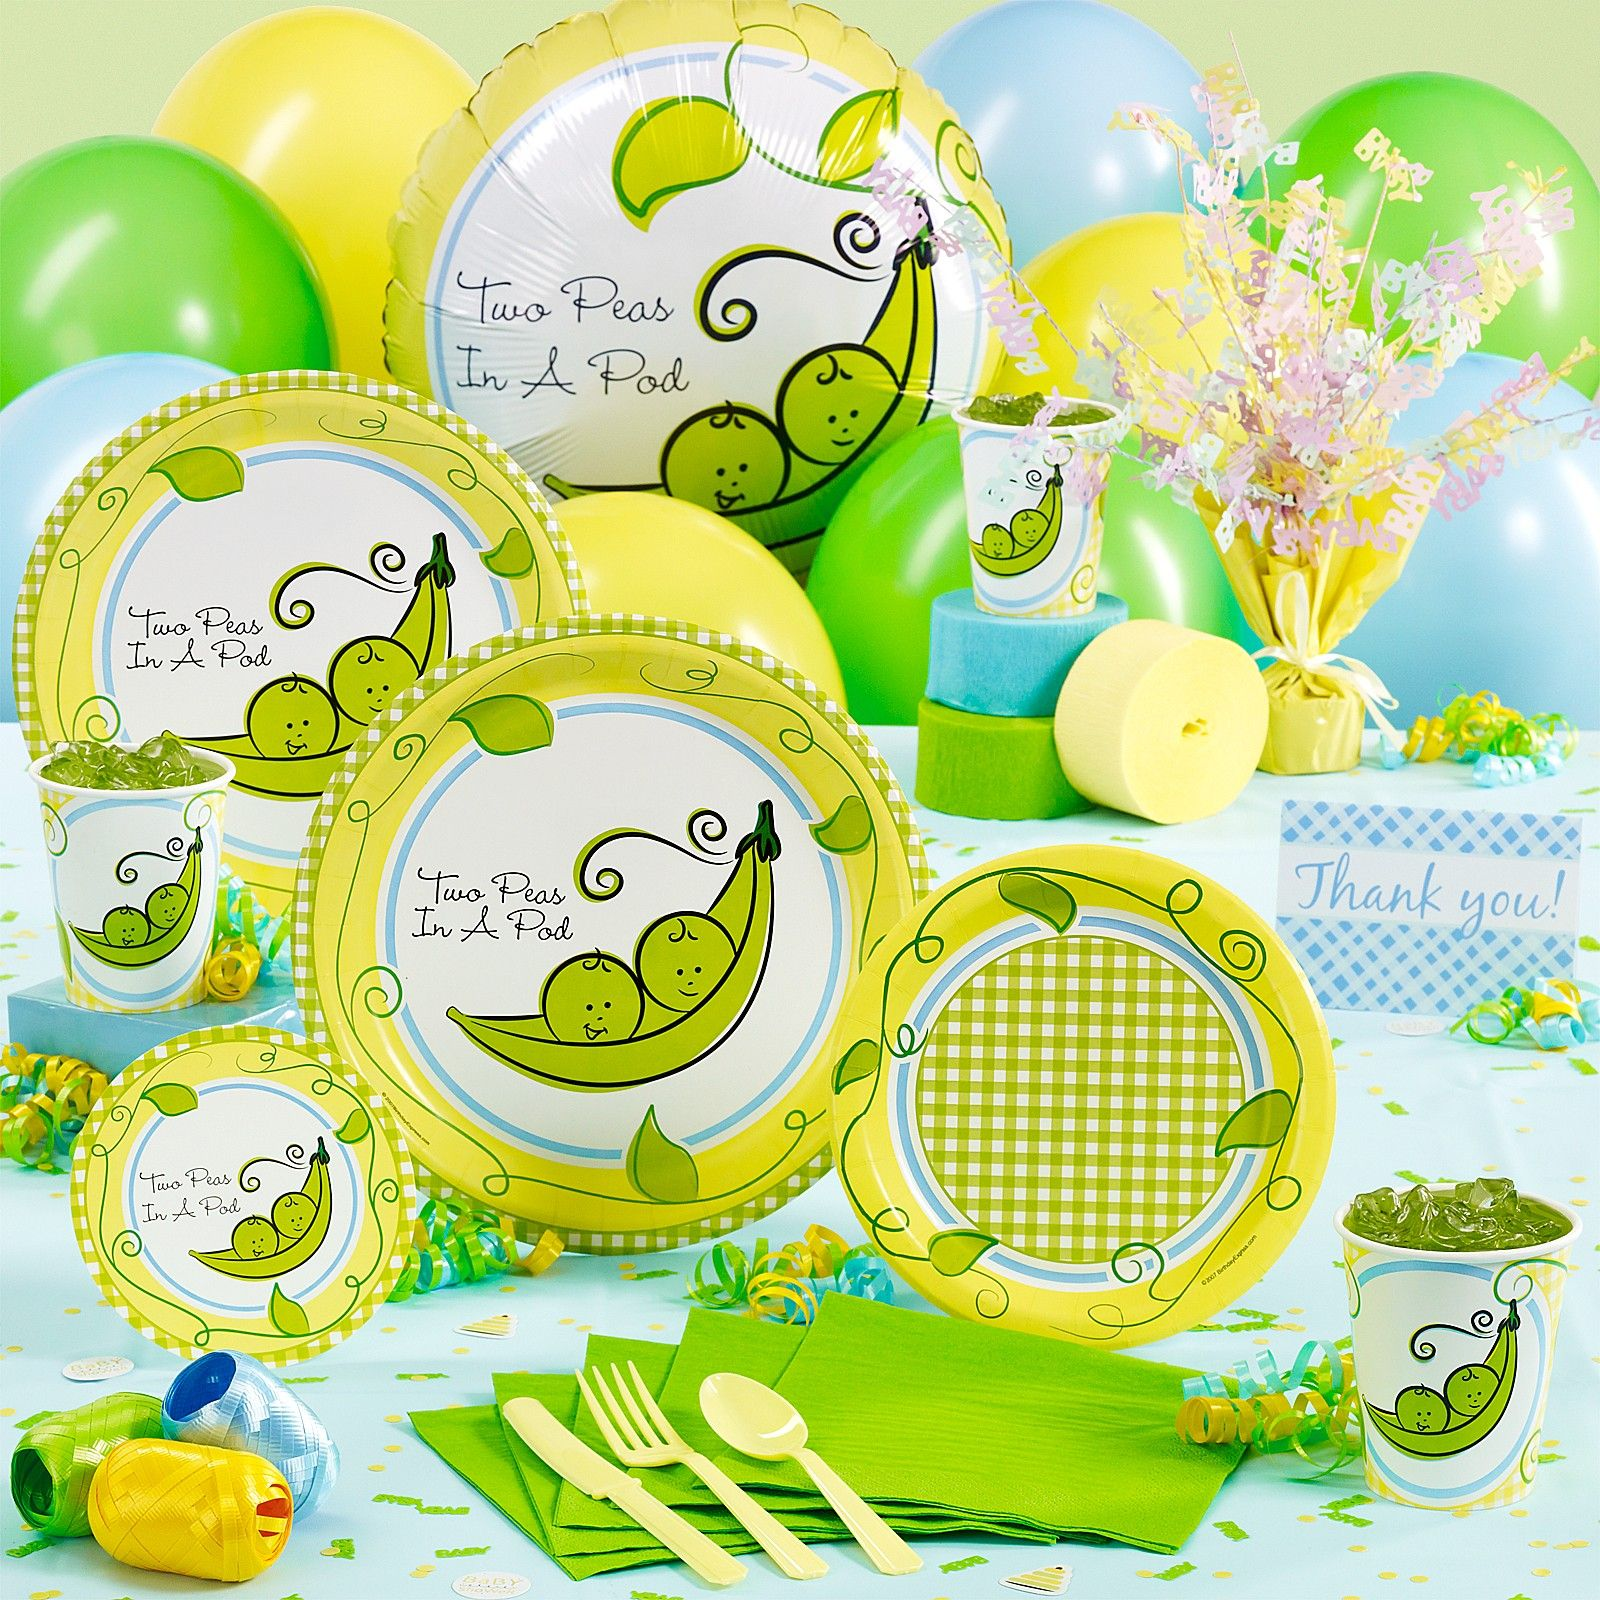 in shower baby home two design peas decor a decorations pod ideas favors